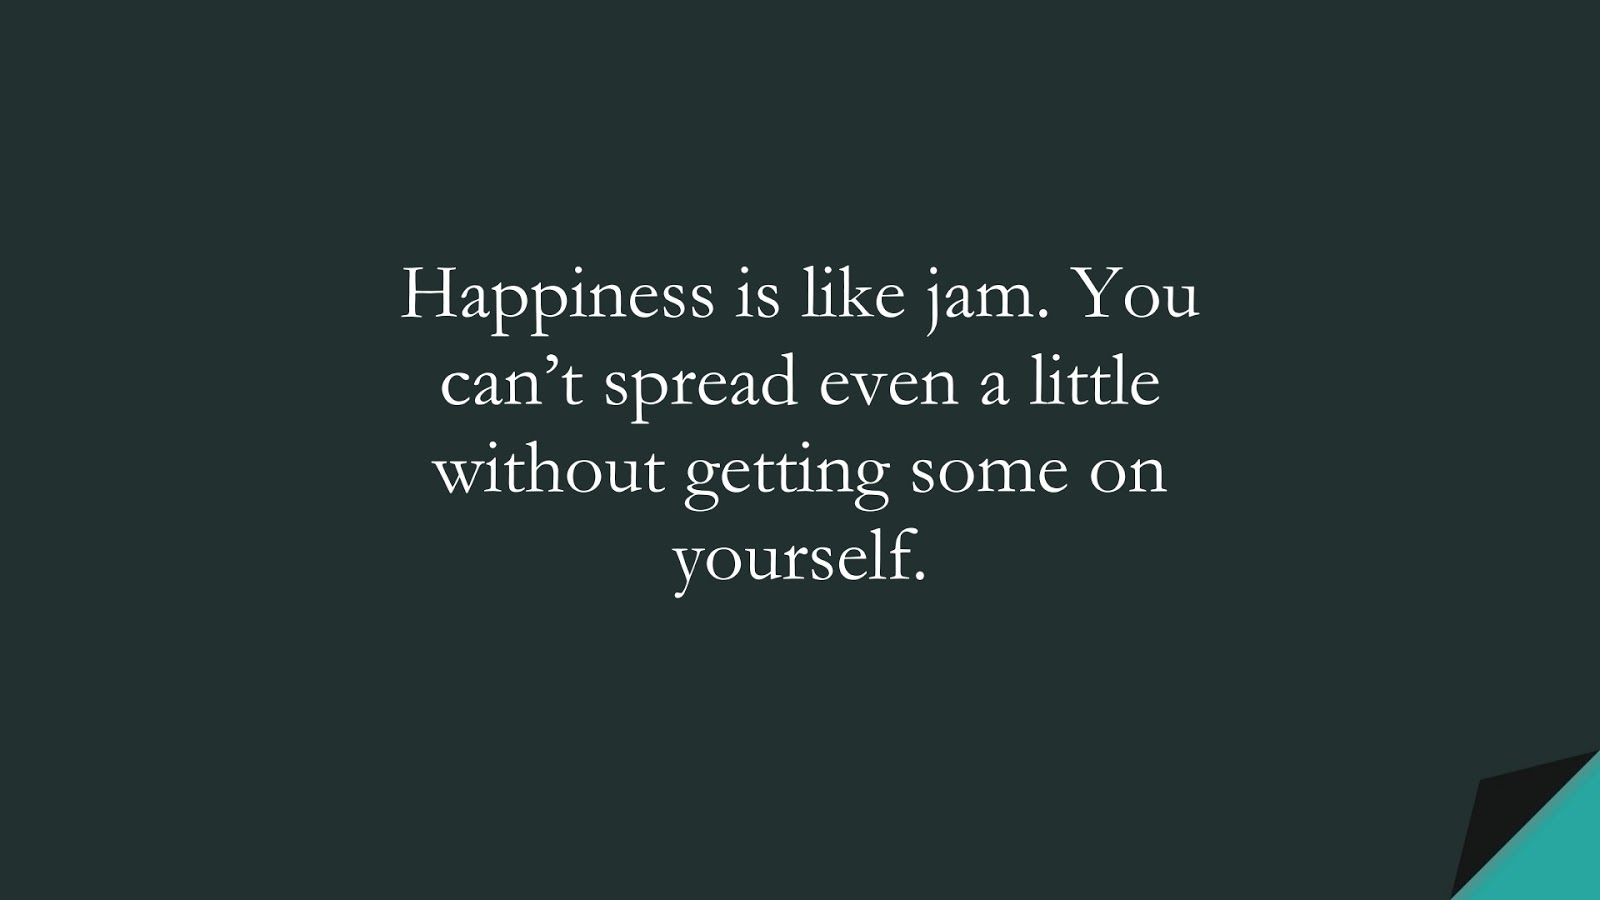 Happiness is like jam. You can't spread even a little without getting some on yourself.FALSE